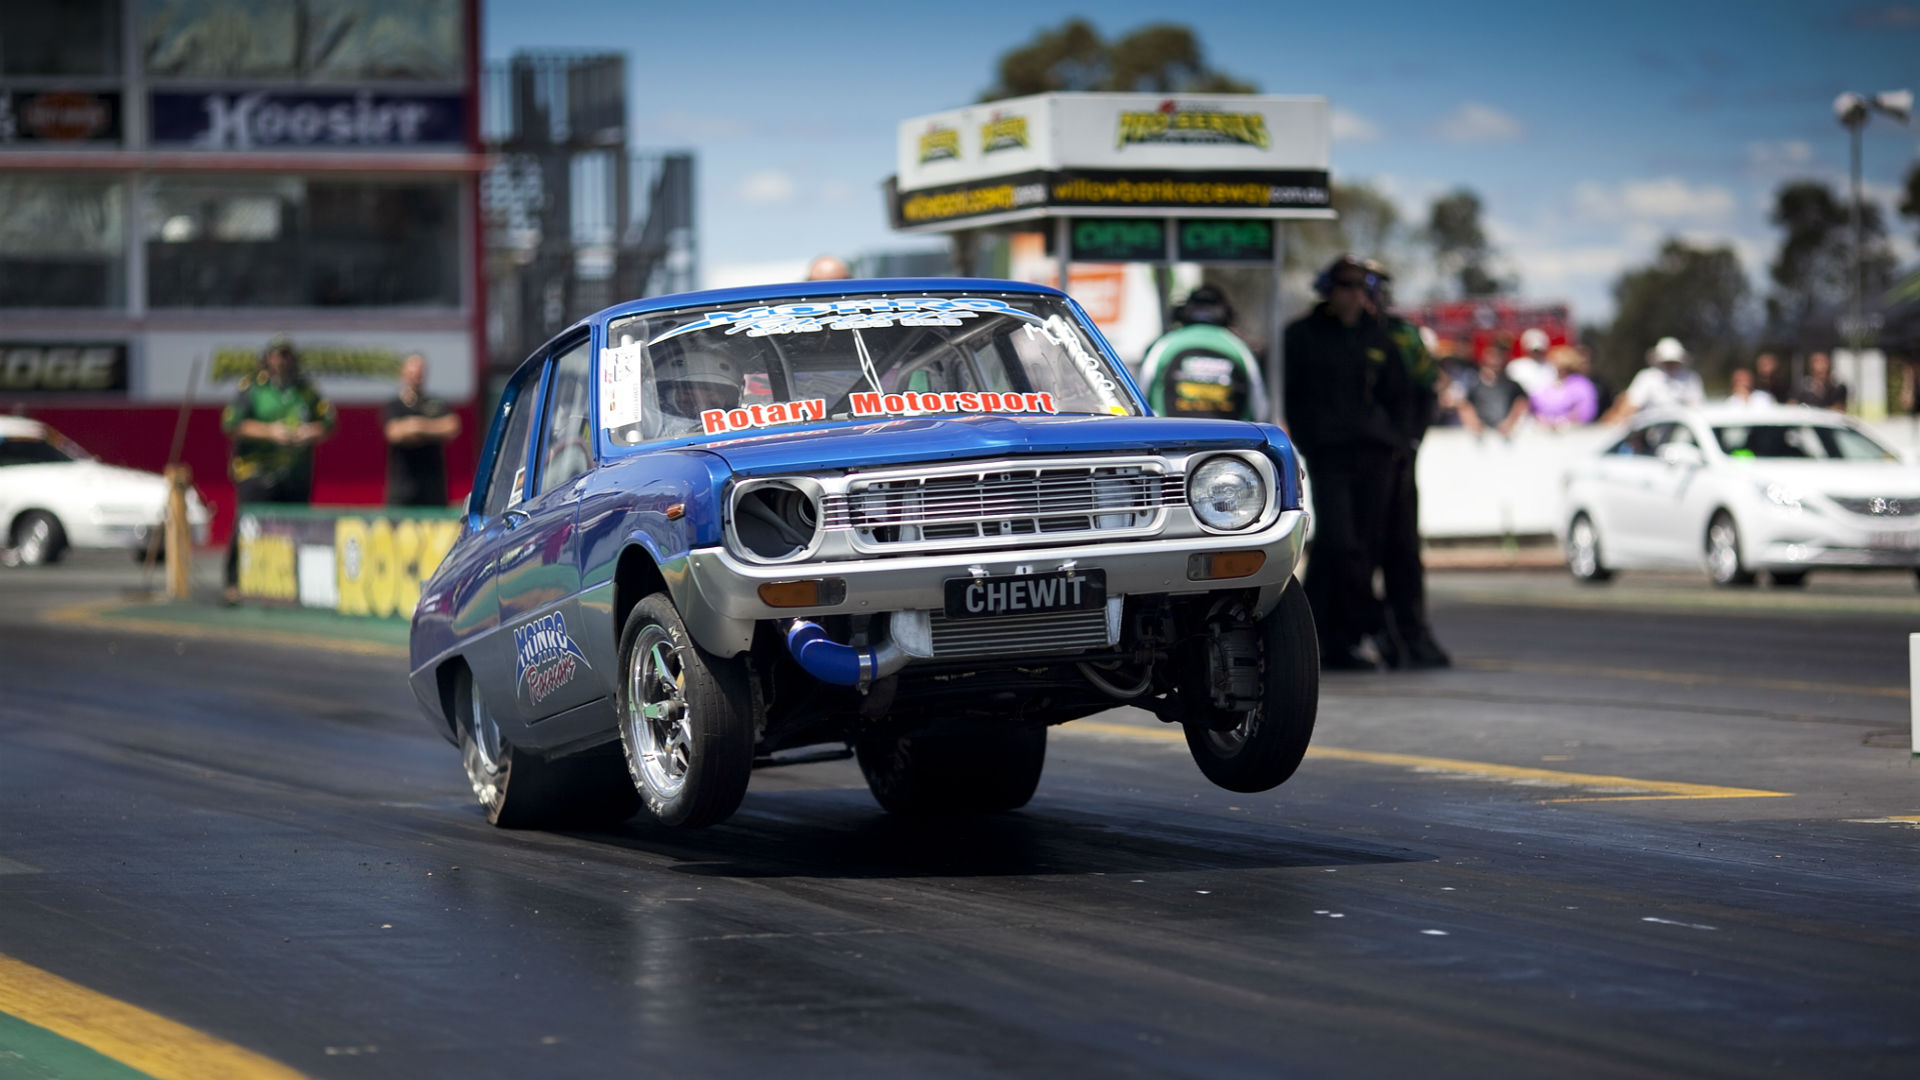 Iphone Wallpaper Muscle Car Drag Racing Full Hd Wallpaper And Background Image